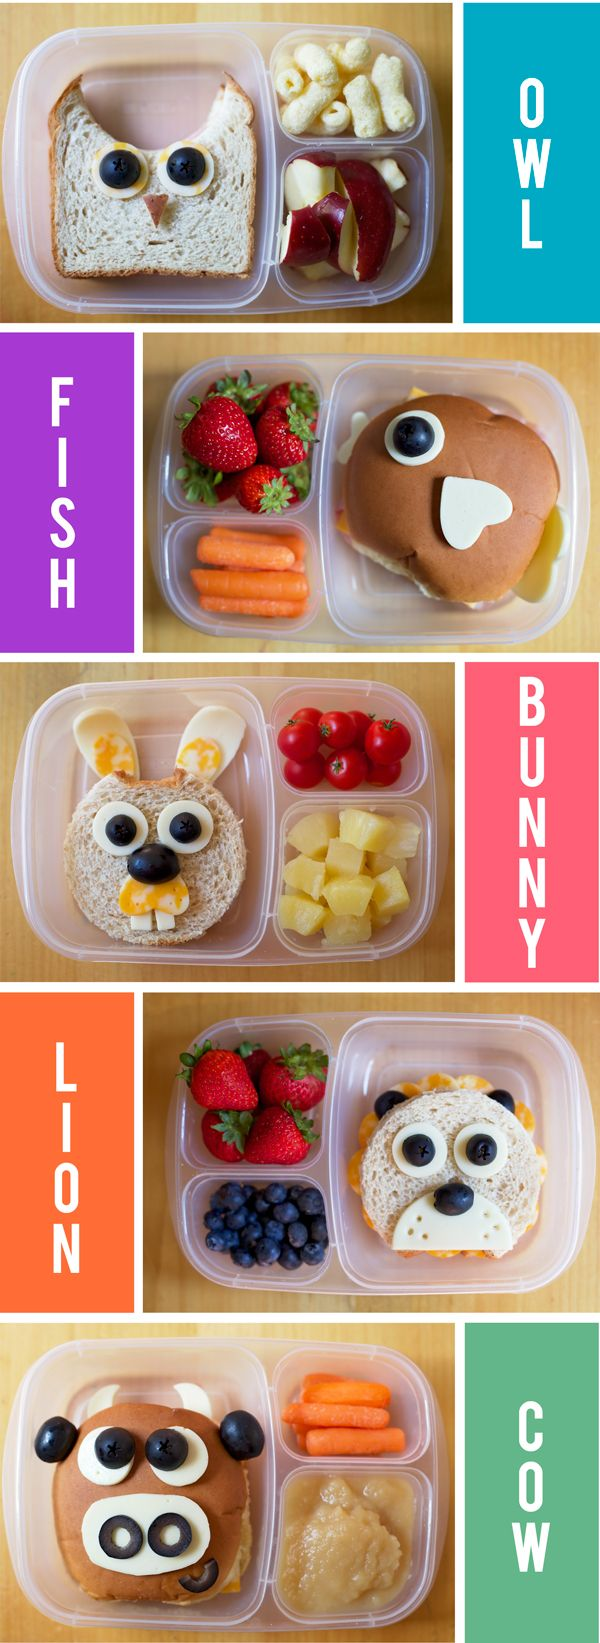 #inspiration for #healthy #meals that are also #adorable and fun for your #kids! www.kidsdinge.com    www.facebook.com/pages/kidsdingecom-Origineel-speelgoed-hebbedingen-voor-hippe-kids/160122710686387?sk=wall        http://instagram.com/kidsdinge #Kidsdinge